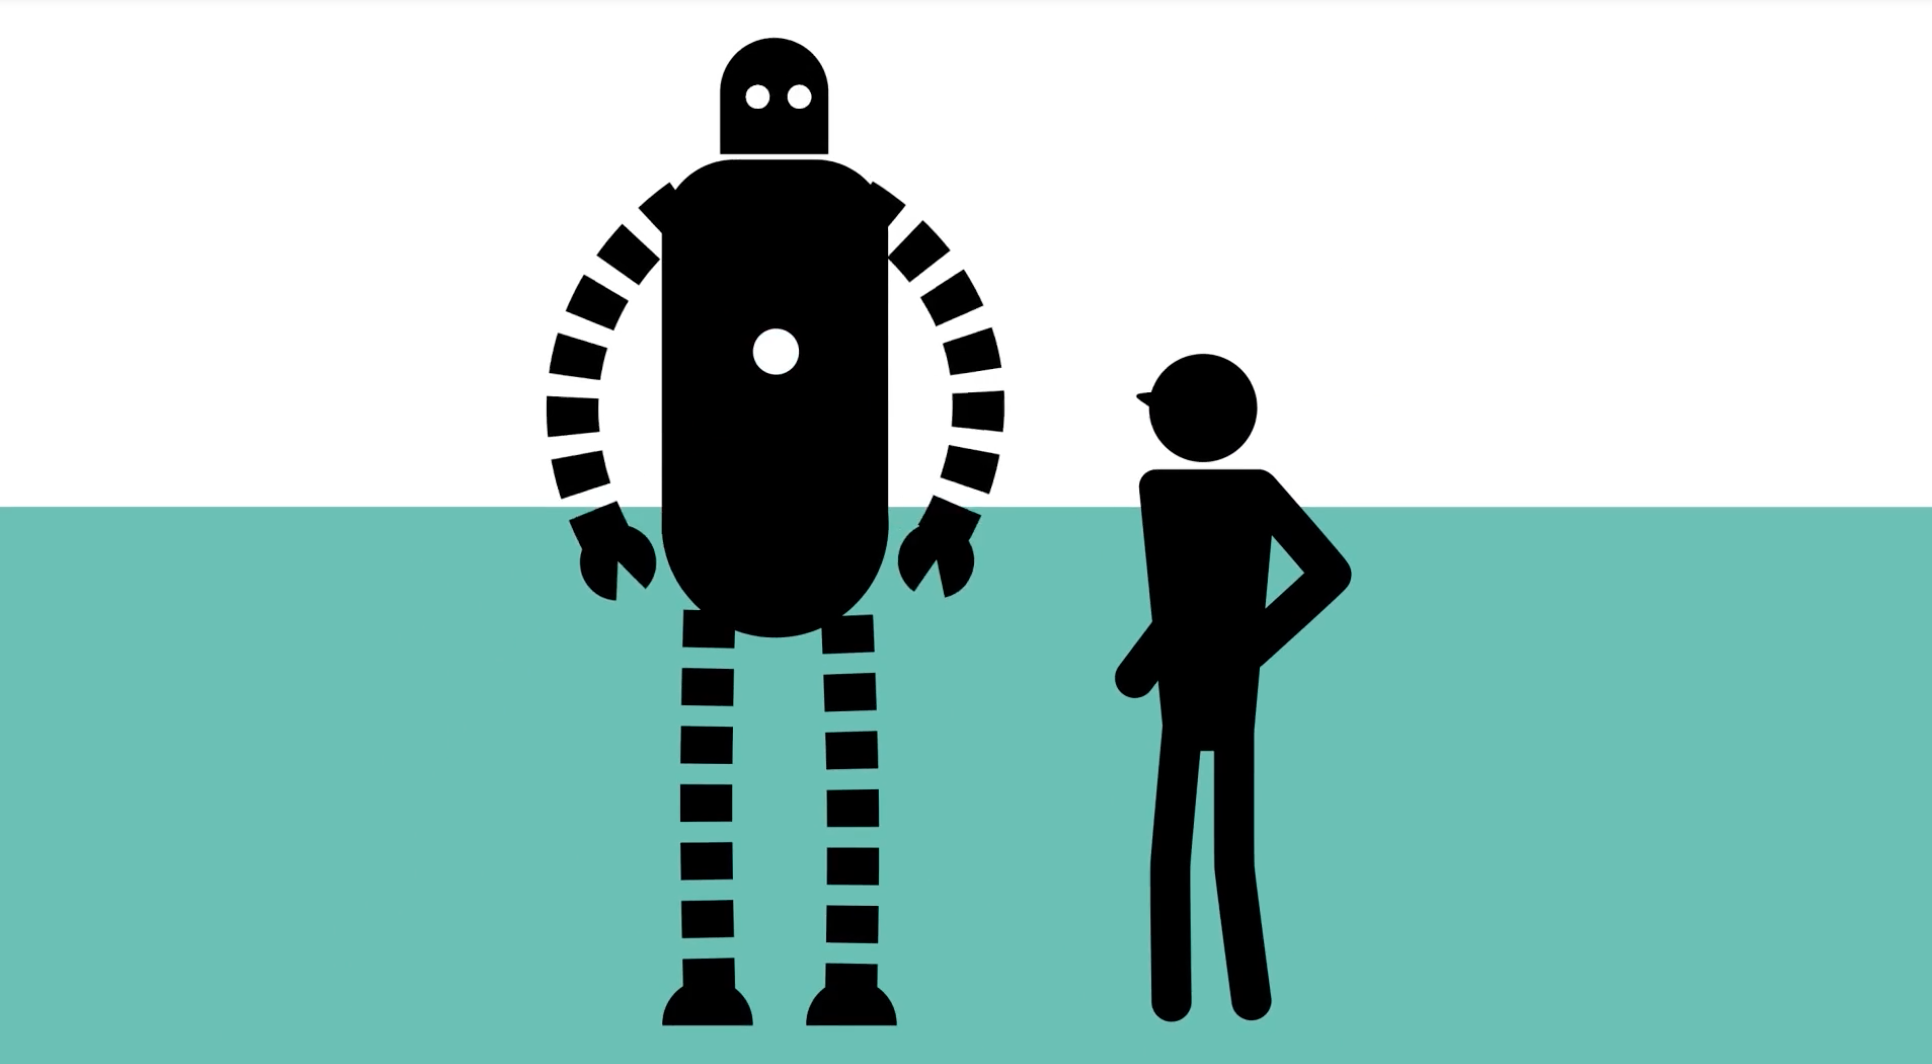 animation of man and robot